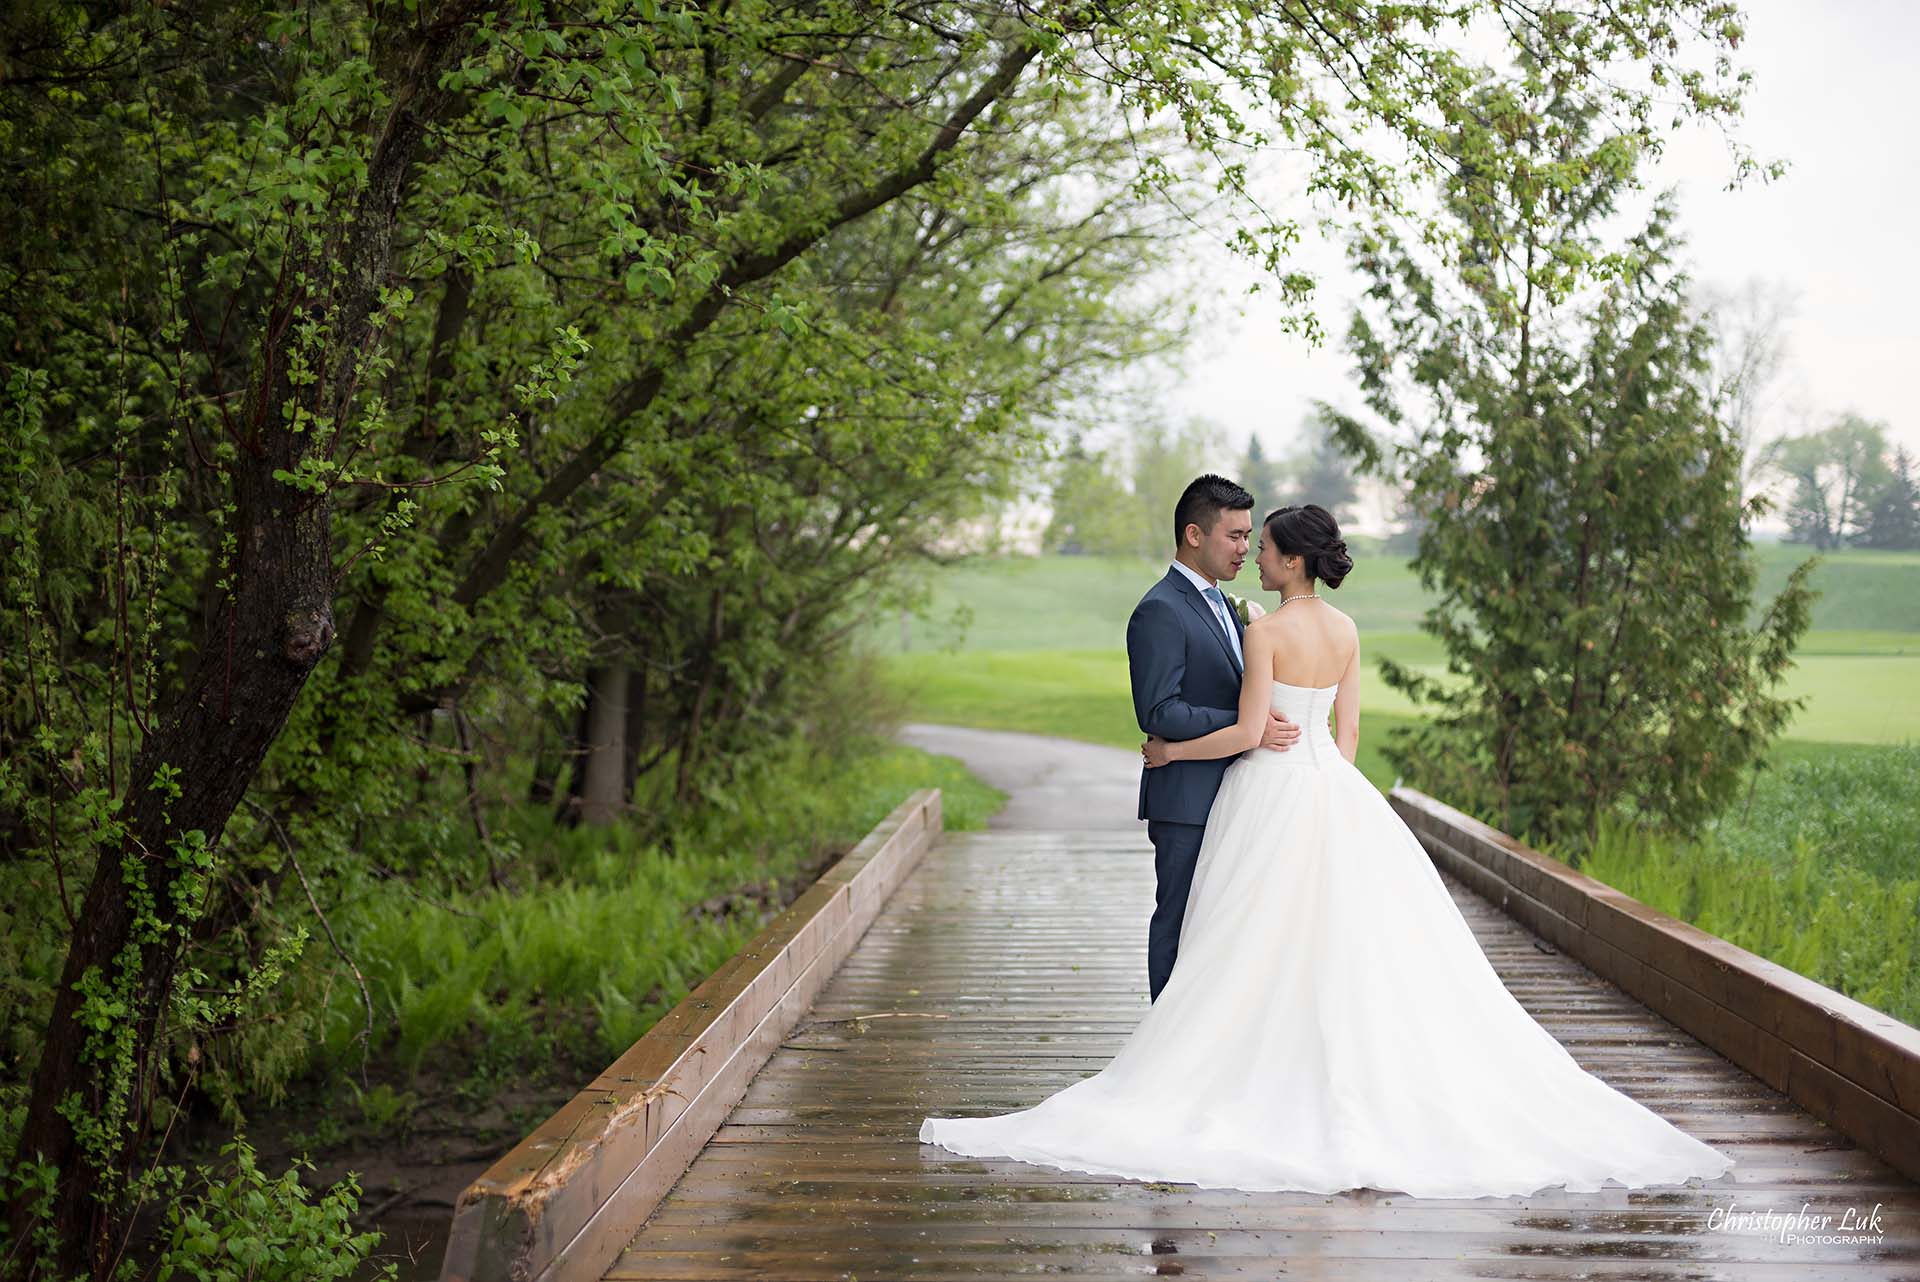 Christopher Luk Toronto Wedding Photographer Angus Glen Golf Club Markham Great Hall Dinner Reception Event Venue Green Field Sunset Bride Groom Natural Candid Photojournalistic Wooden Bridge Green Arch Trees Holding Each Other Hug Bridal Dress Gown Train Landscape